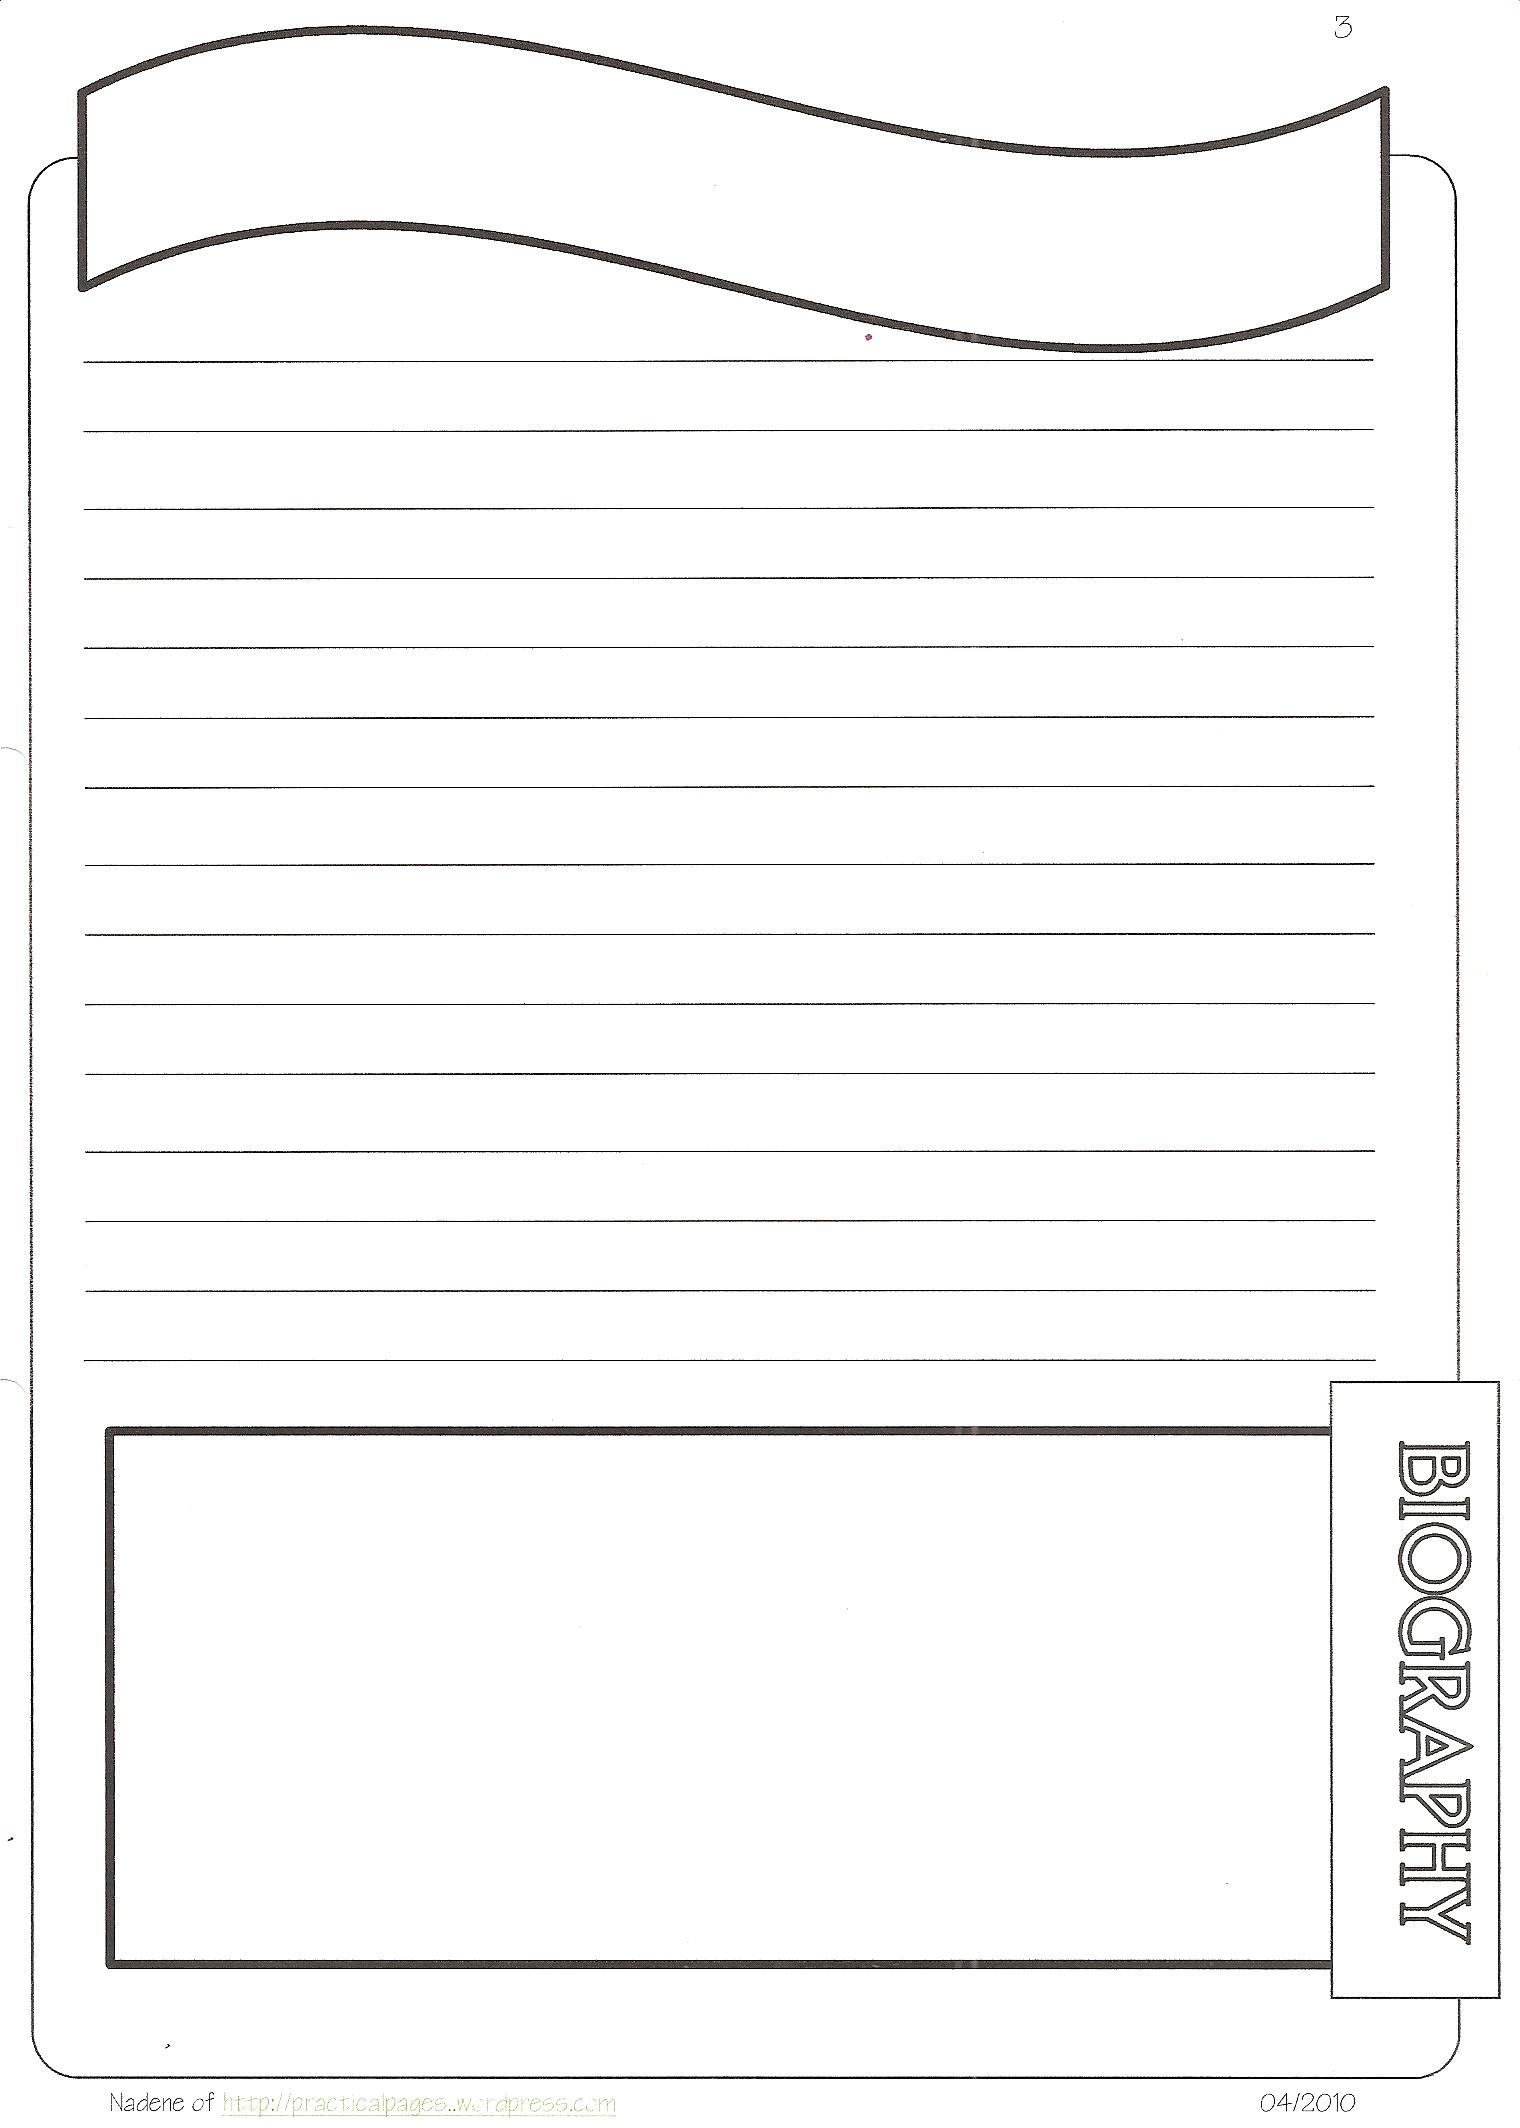 New Biography Notebook Page Templates 3wmStGgd